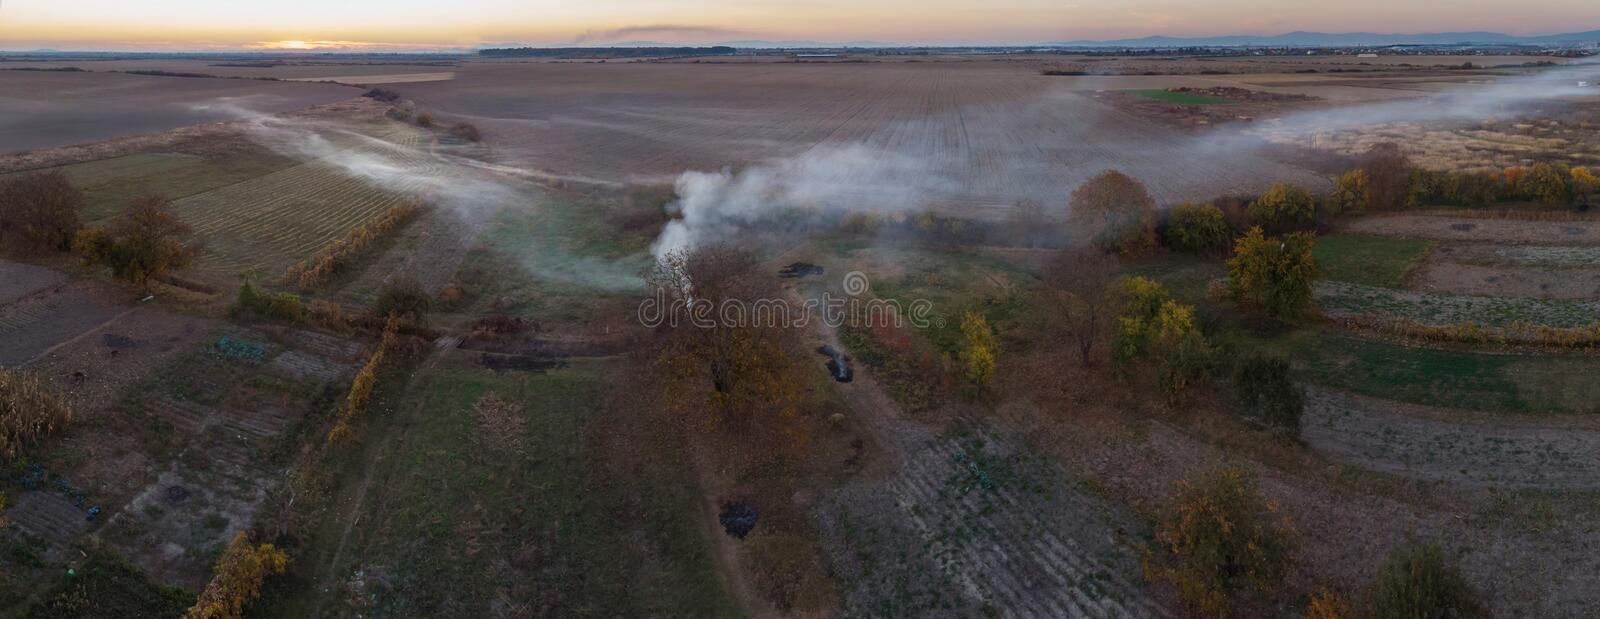 The smoke over the village. Clubs of smoke over the village houses and fields. stock photo